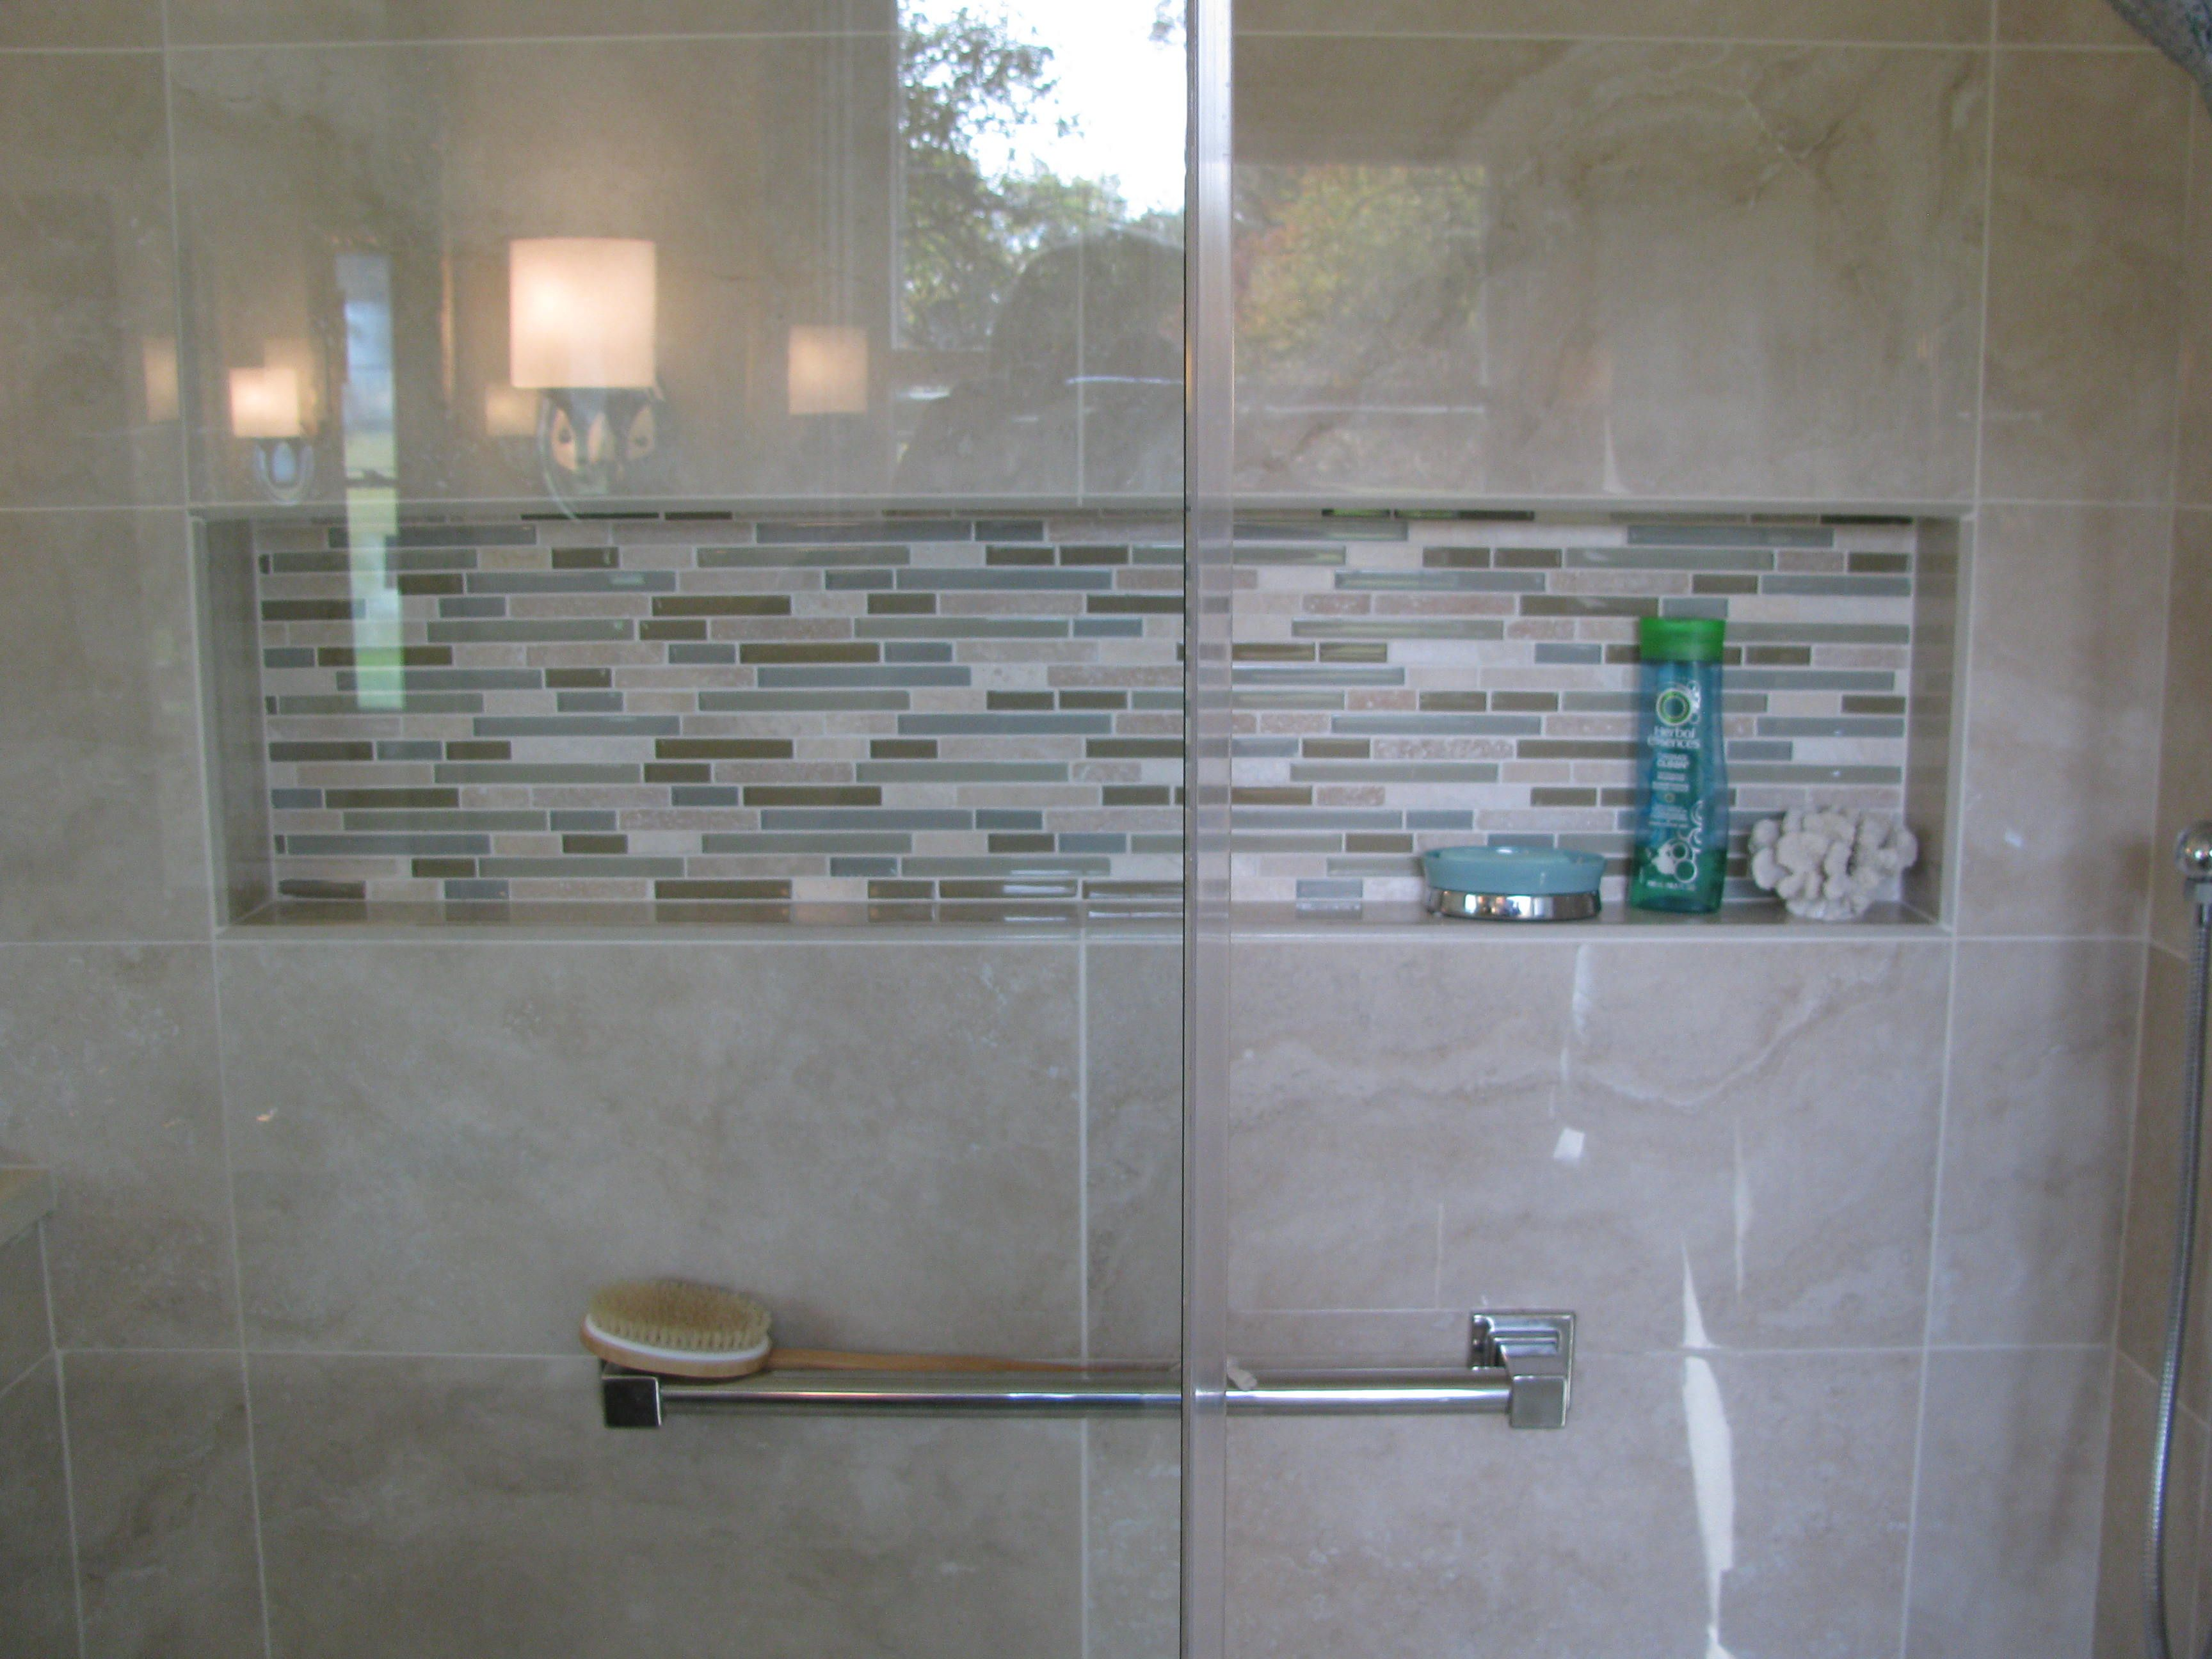 Luxury The Bathroom Is As Refined As The Outdoor Surroundings Of The  And Shower Walls  Provides Elegant Yet Natural Appeal The Waterworks Keystone Tile Used